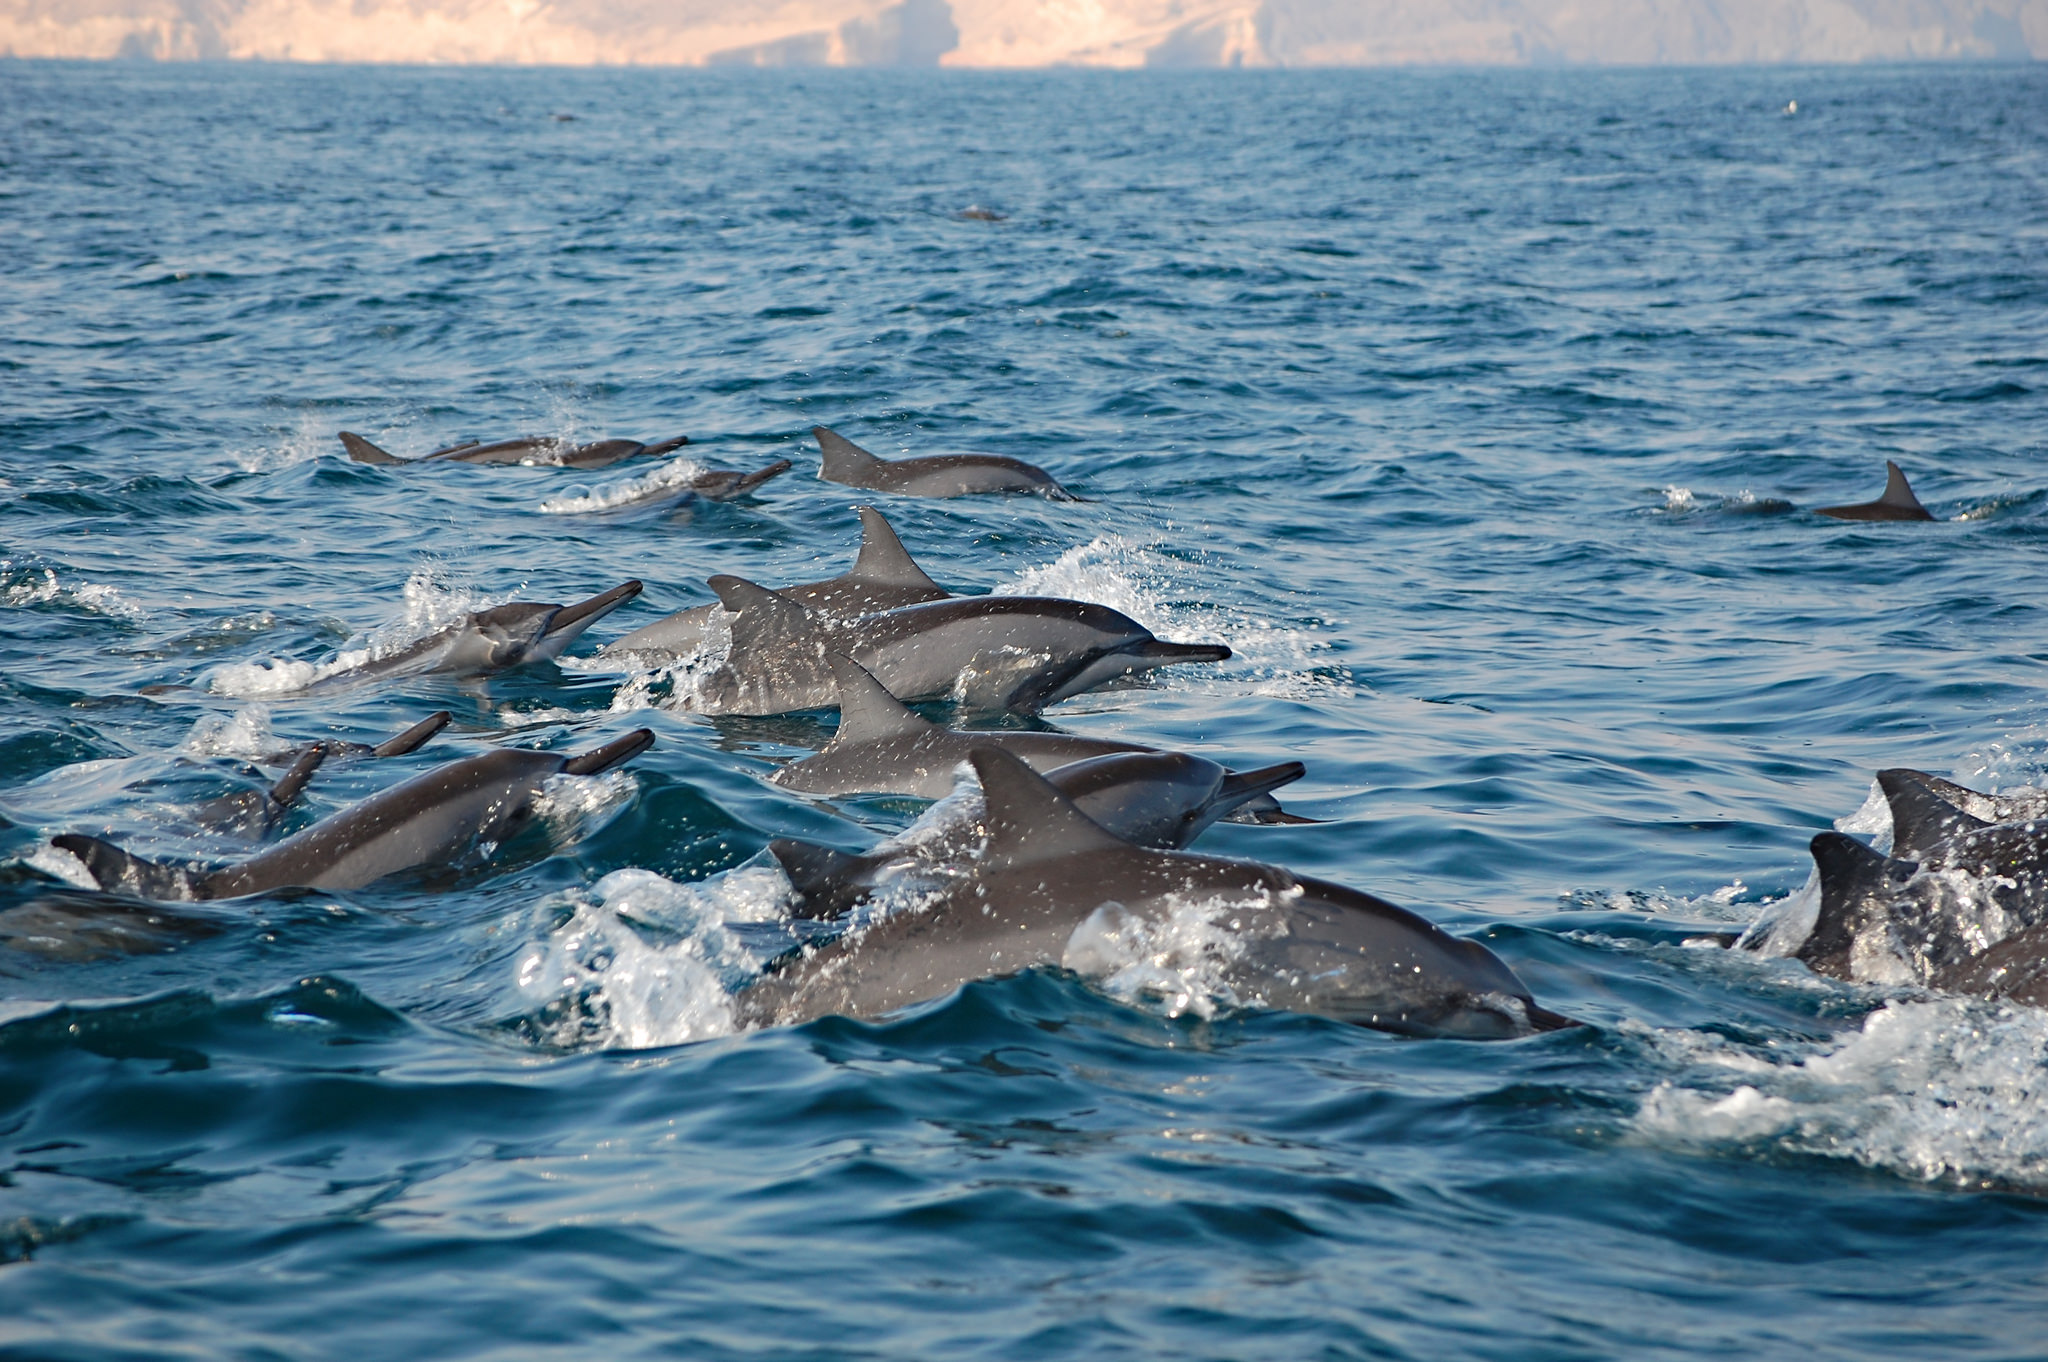 A pod of dolphins jumping in mid air